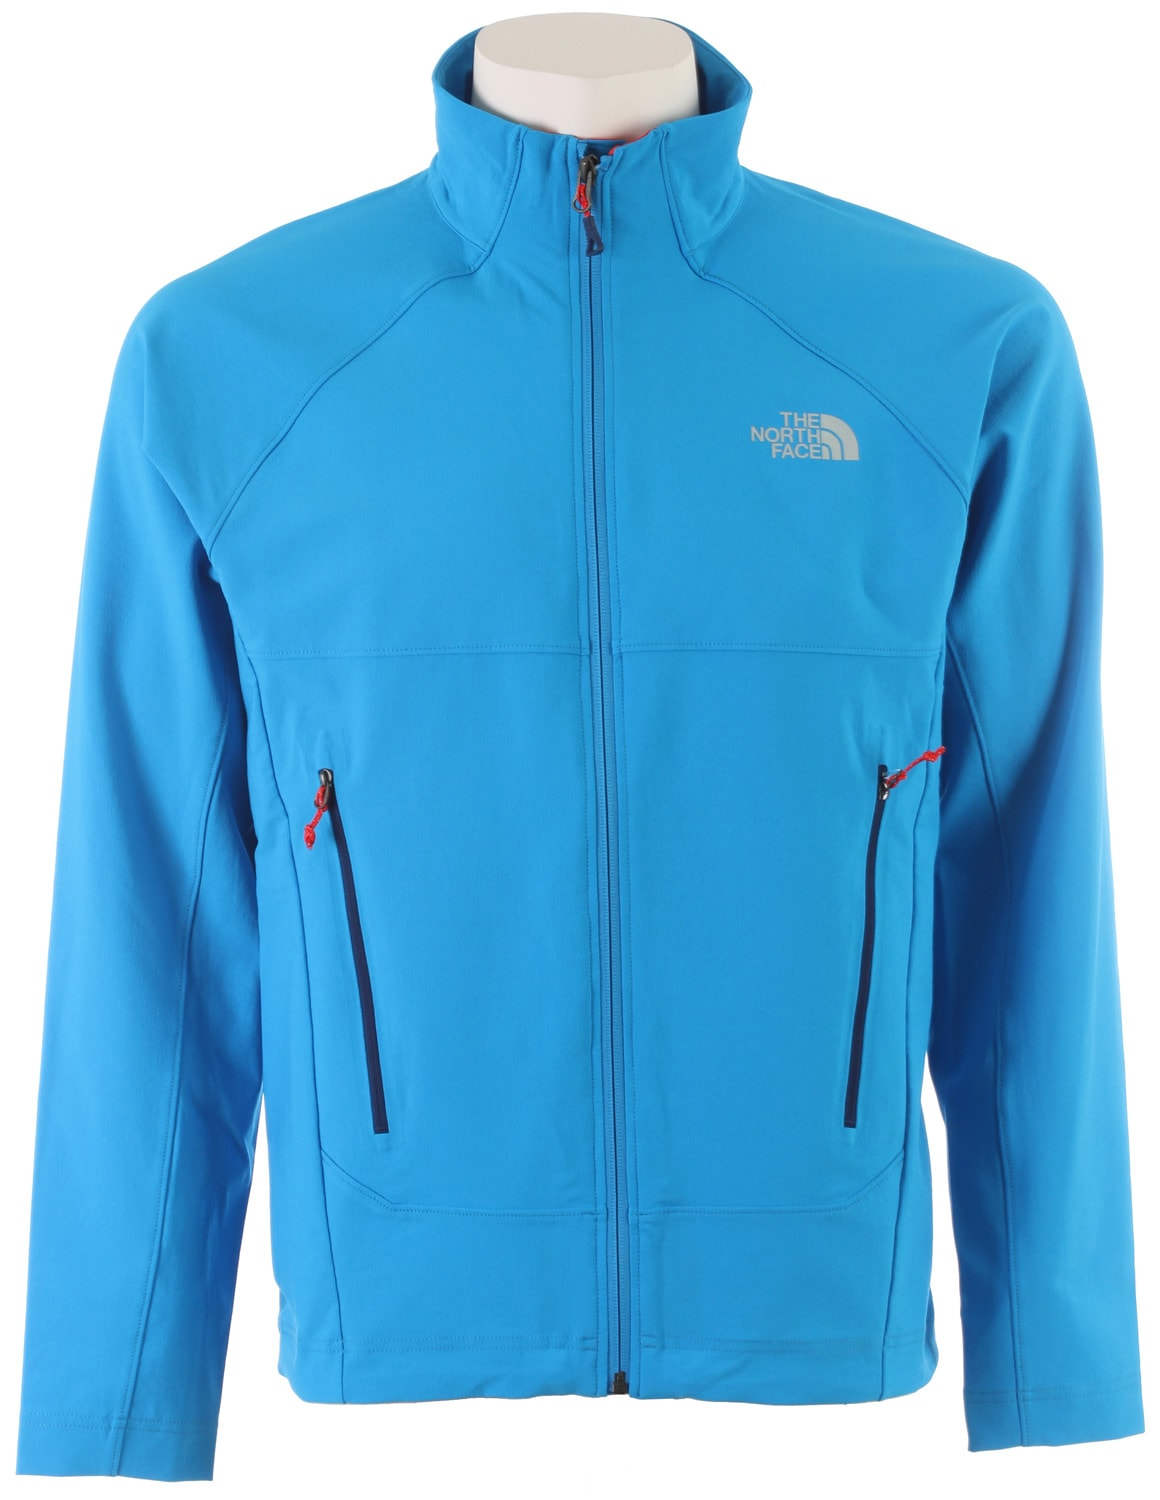 The North Face Iodin Jacket nf3iod02lbl14zz-the-north-face-casual-jackets